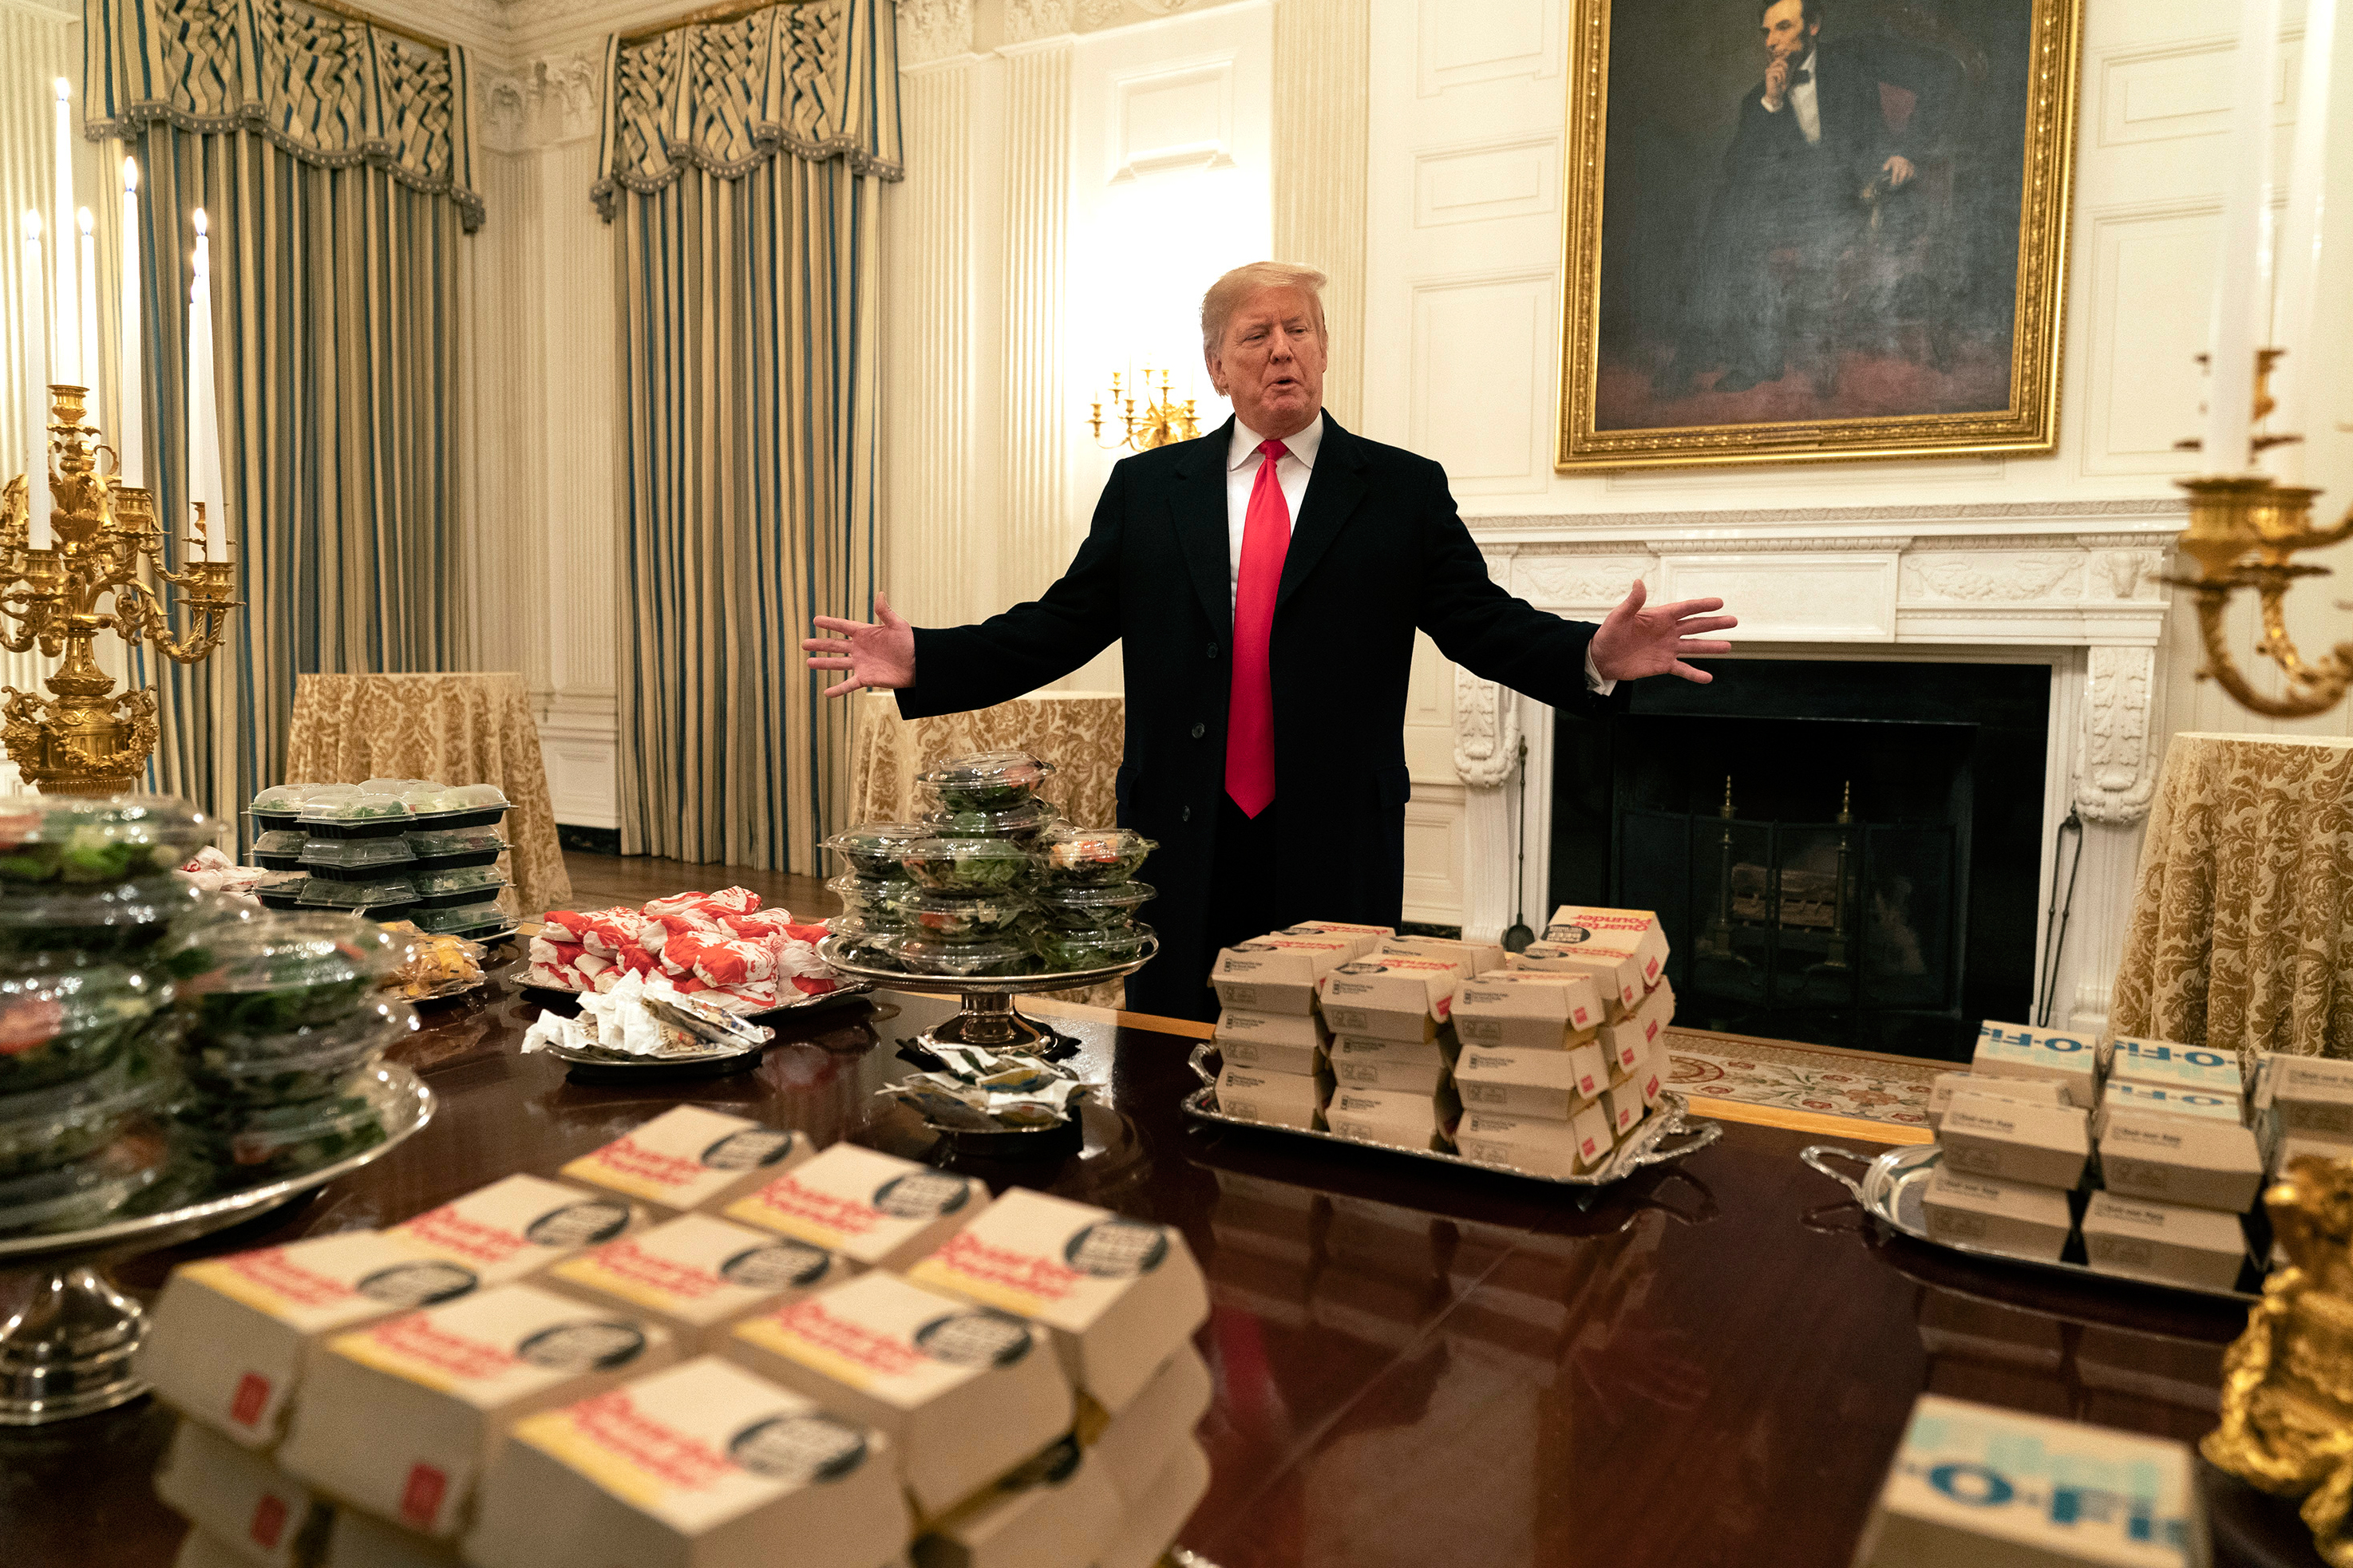 Trump Lies About Size Of White House Fast Food Feast Rolling Stone